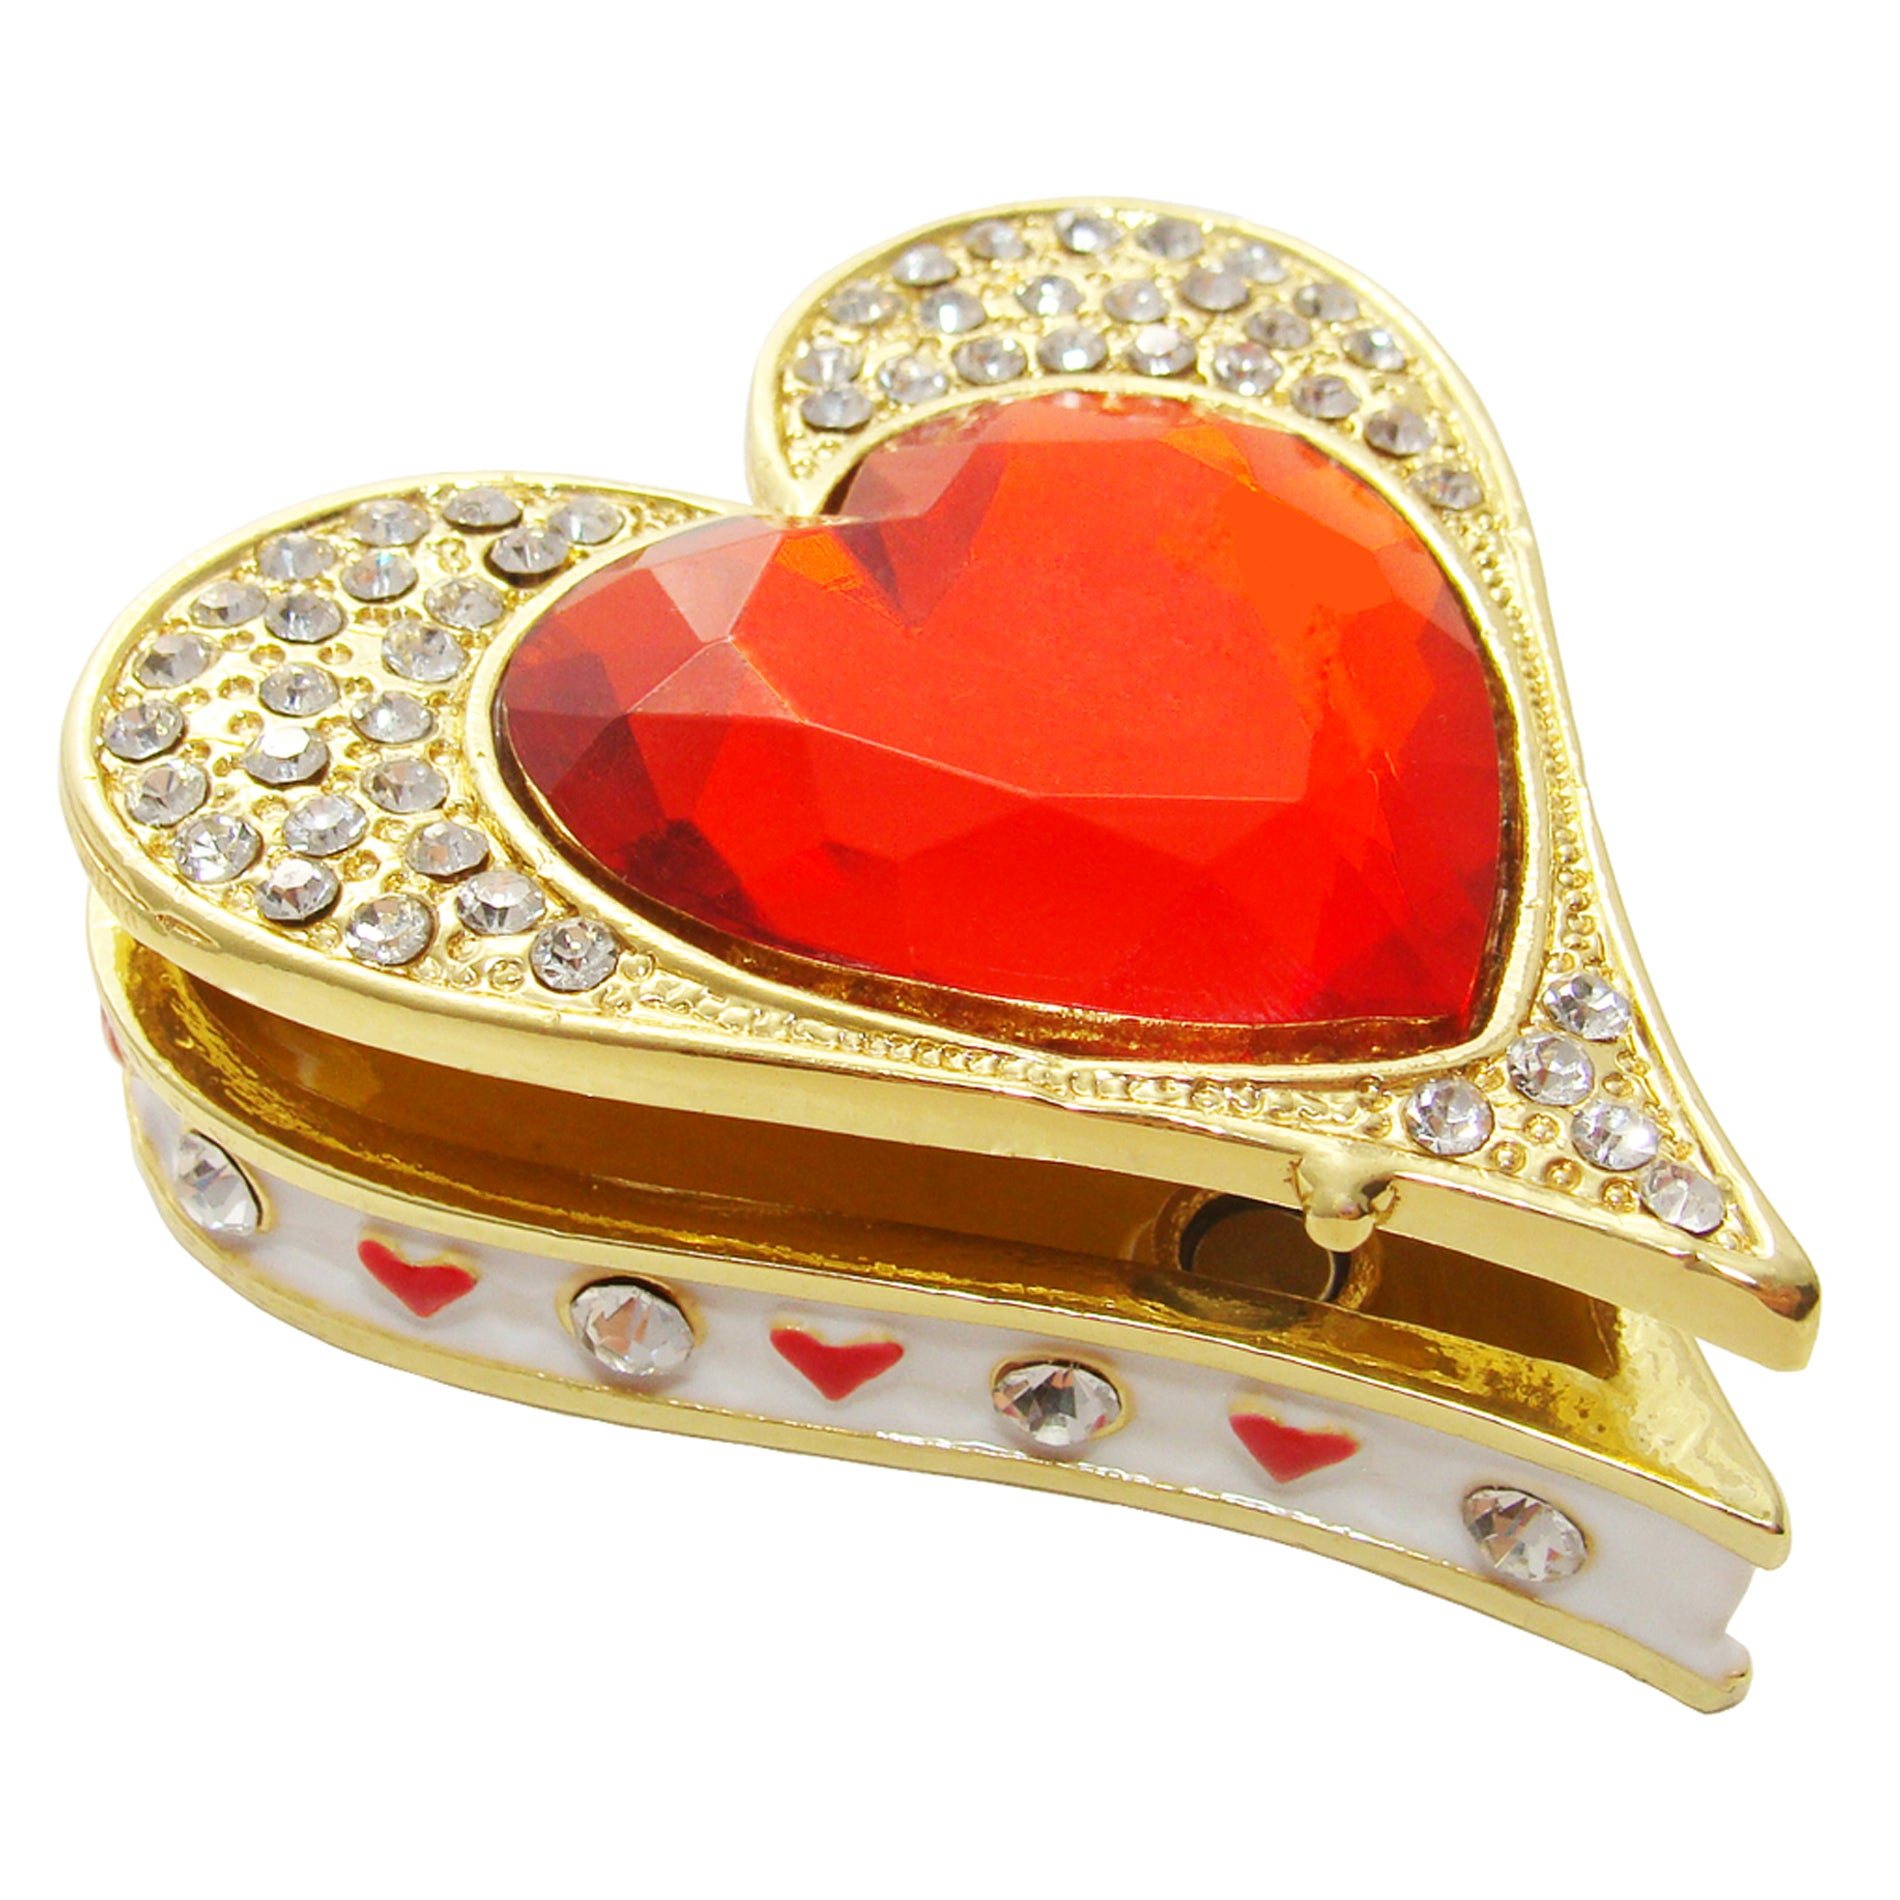 Objet d'art 'Queen of Hearts' Trinket Box